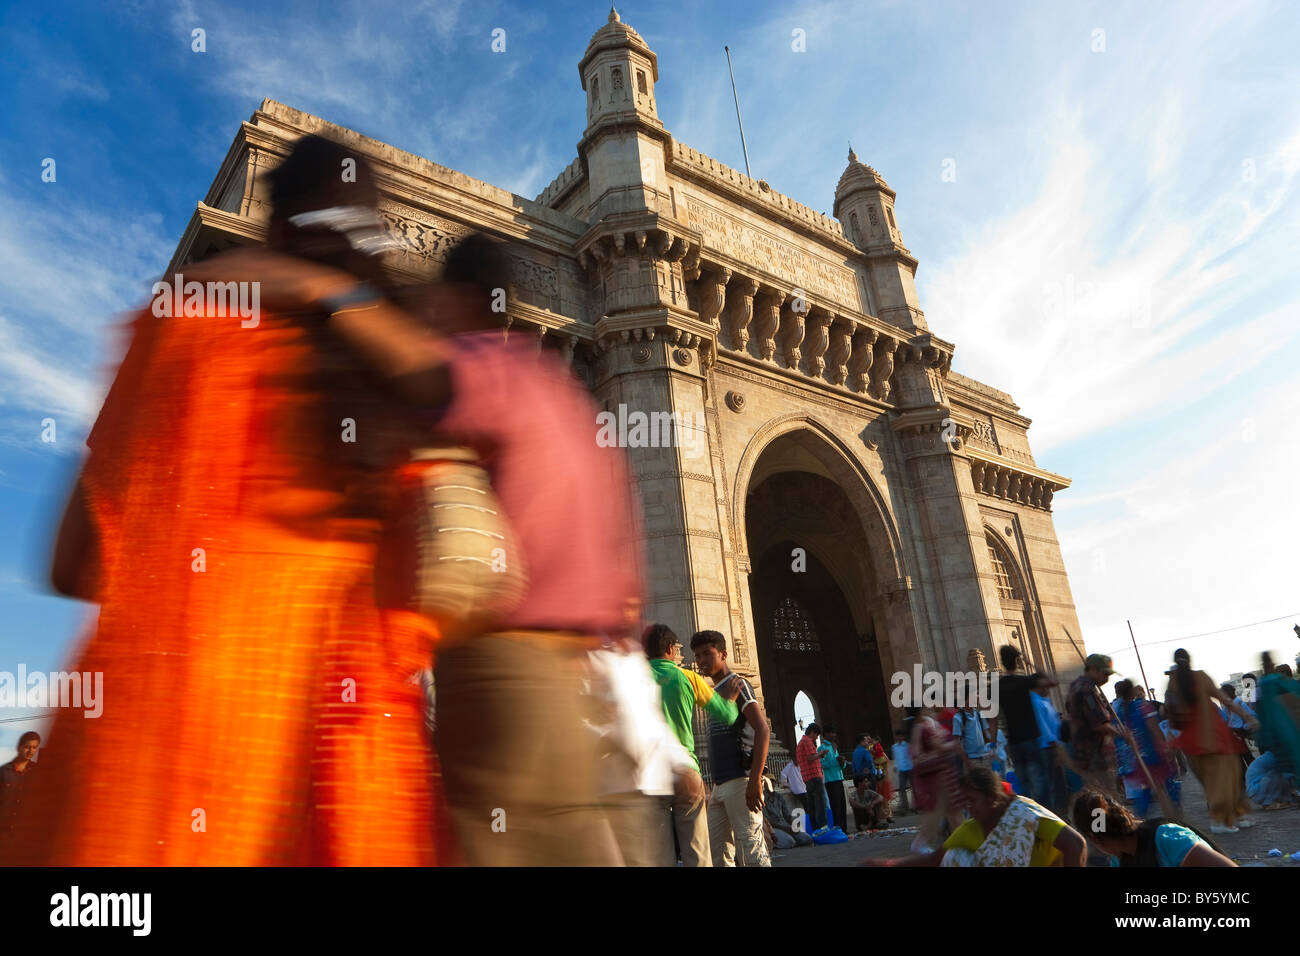 Gateway of India, Mumbai (Bombay), India Immagini Stock